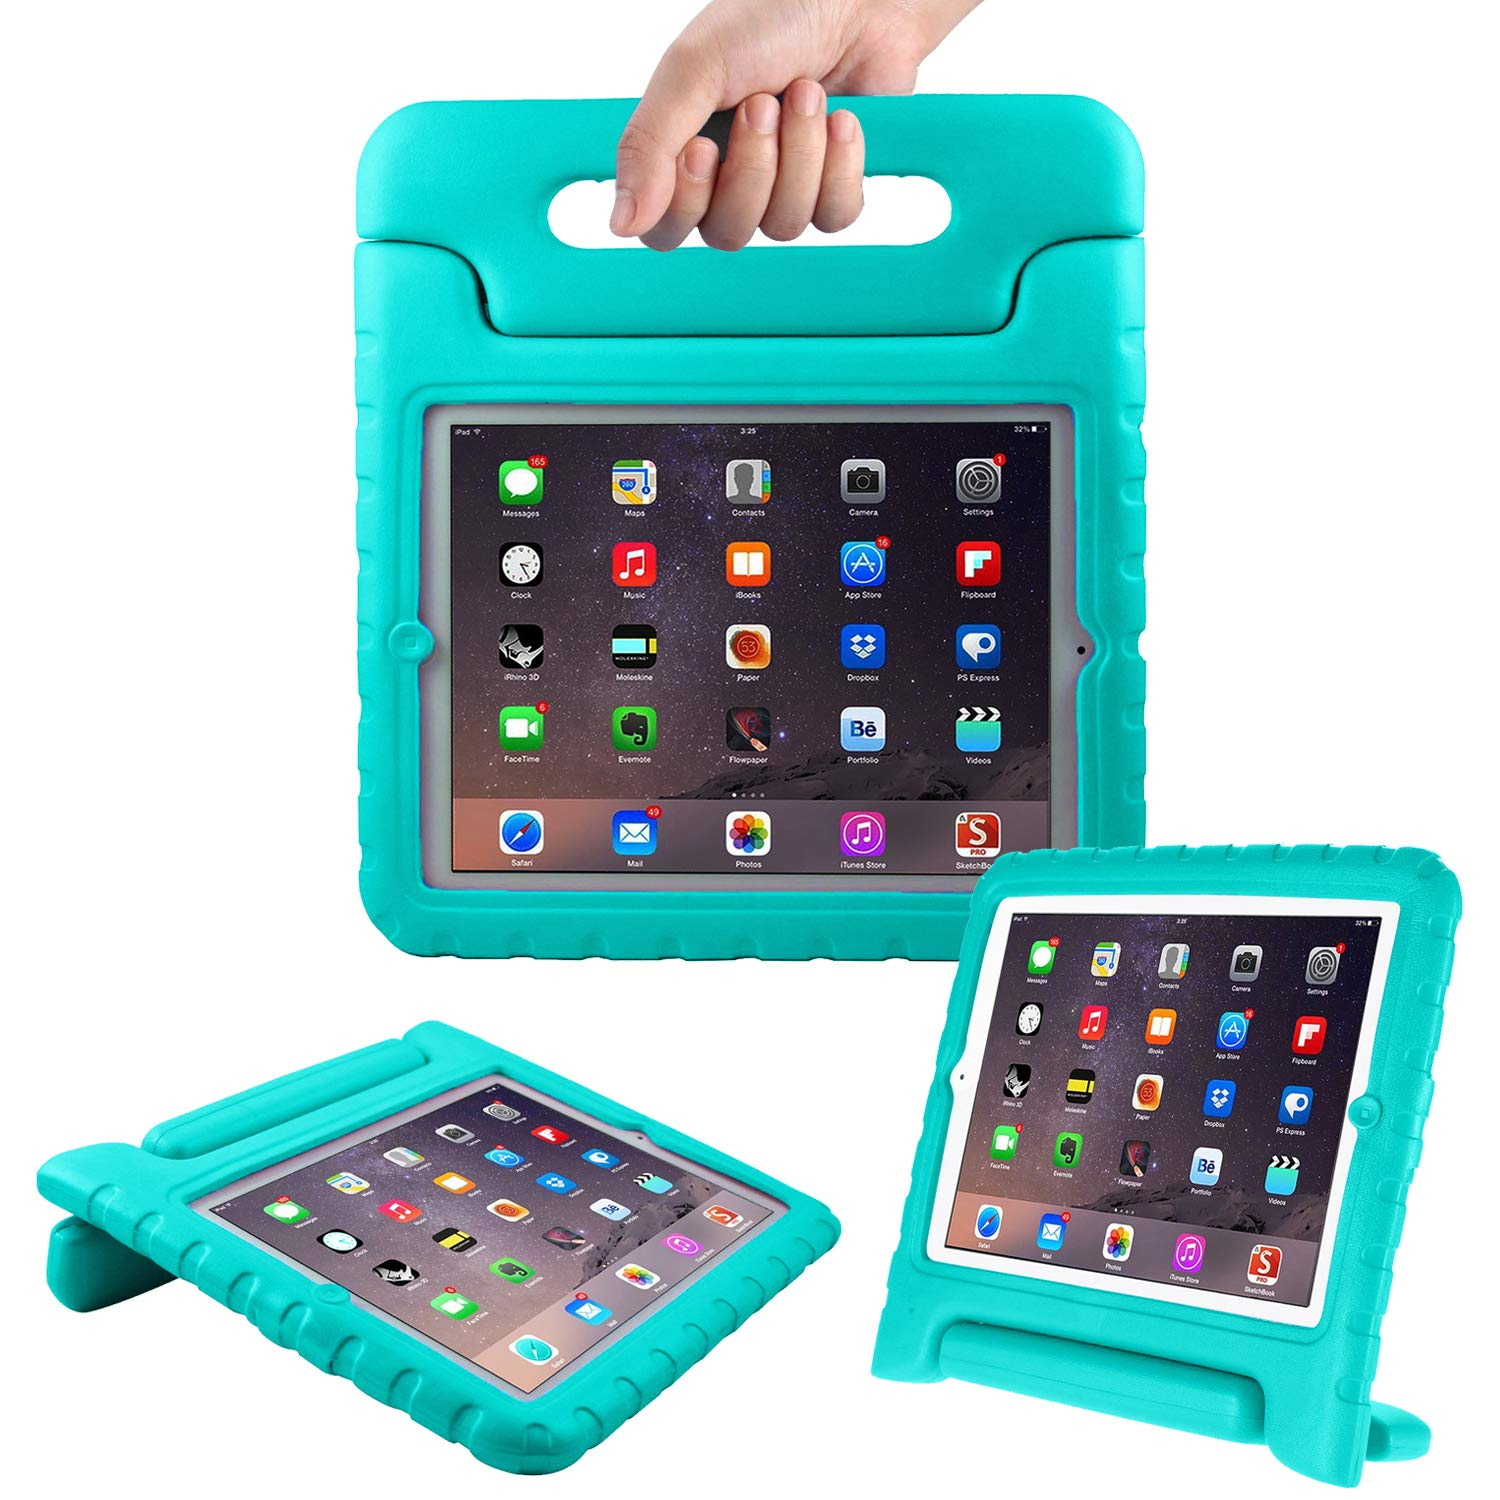 "AVAWO Kids Case for 9.7"" iPad 2 3 4 (Old Model)- Light Weight Shock Proof Convertible Handle Stand Kids Friendly for iPad 2, iPad 3rd Generation, iPad 4th Generation Tablet - Turquoise"